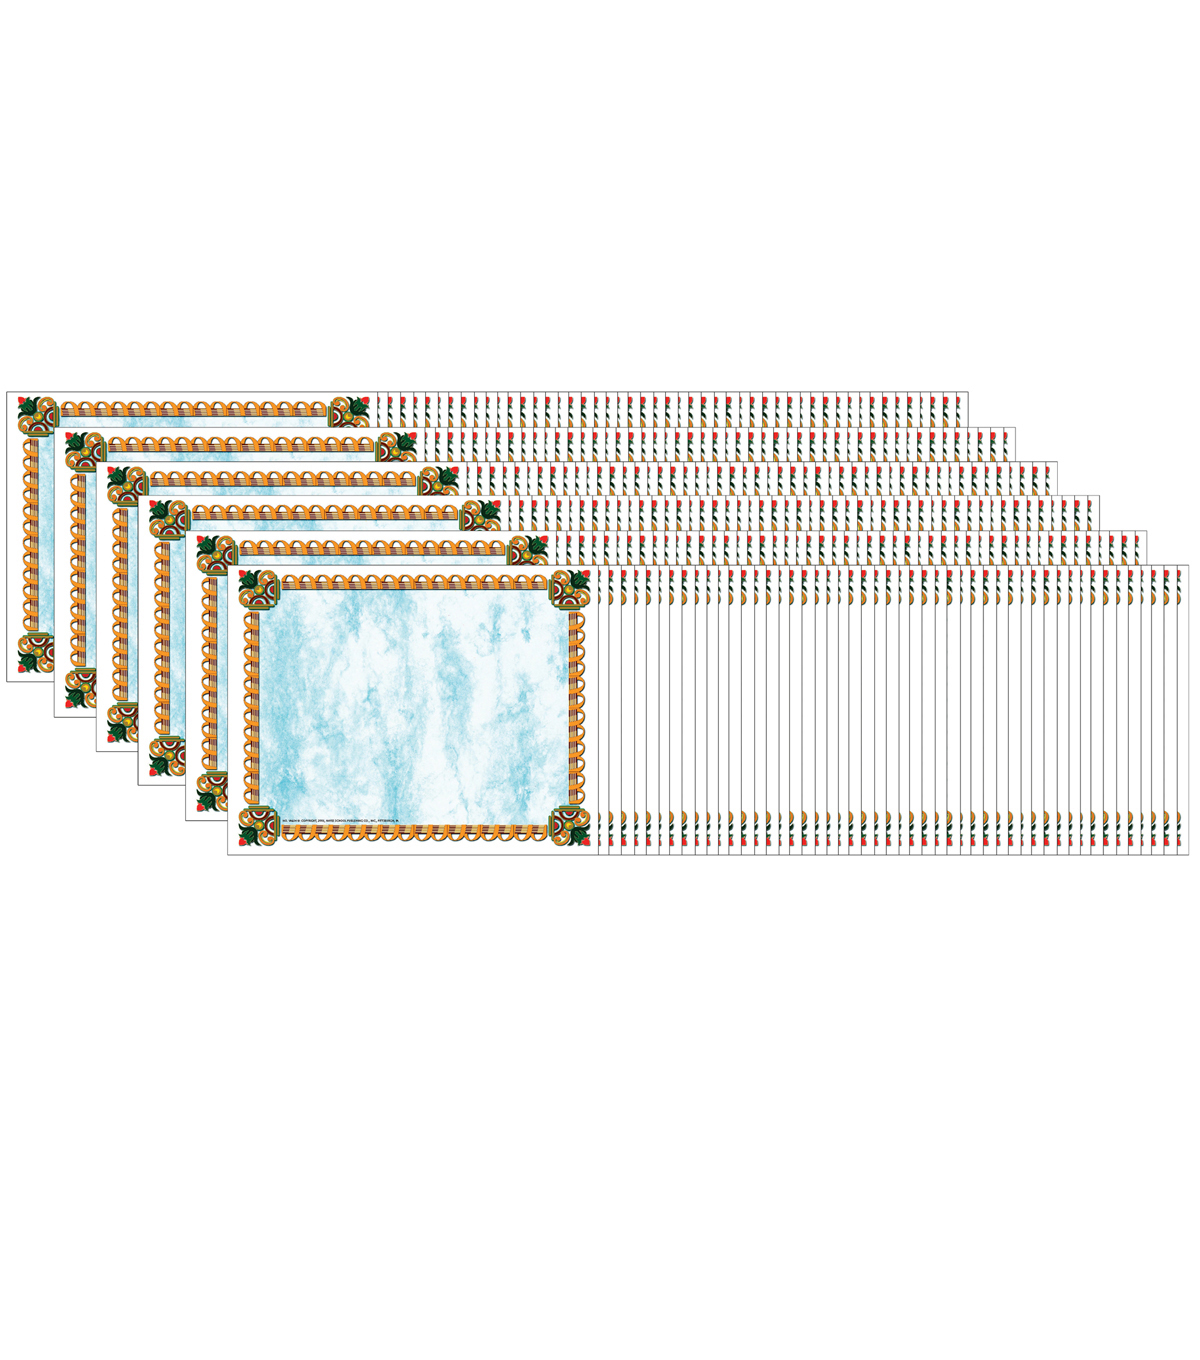 Hayes Gold Border Certificate, 50 Per Pack, 6 Packs